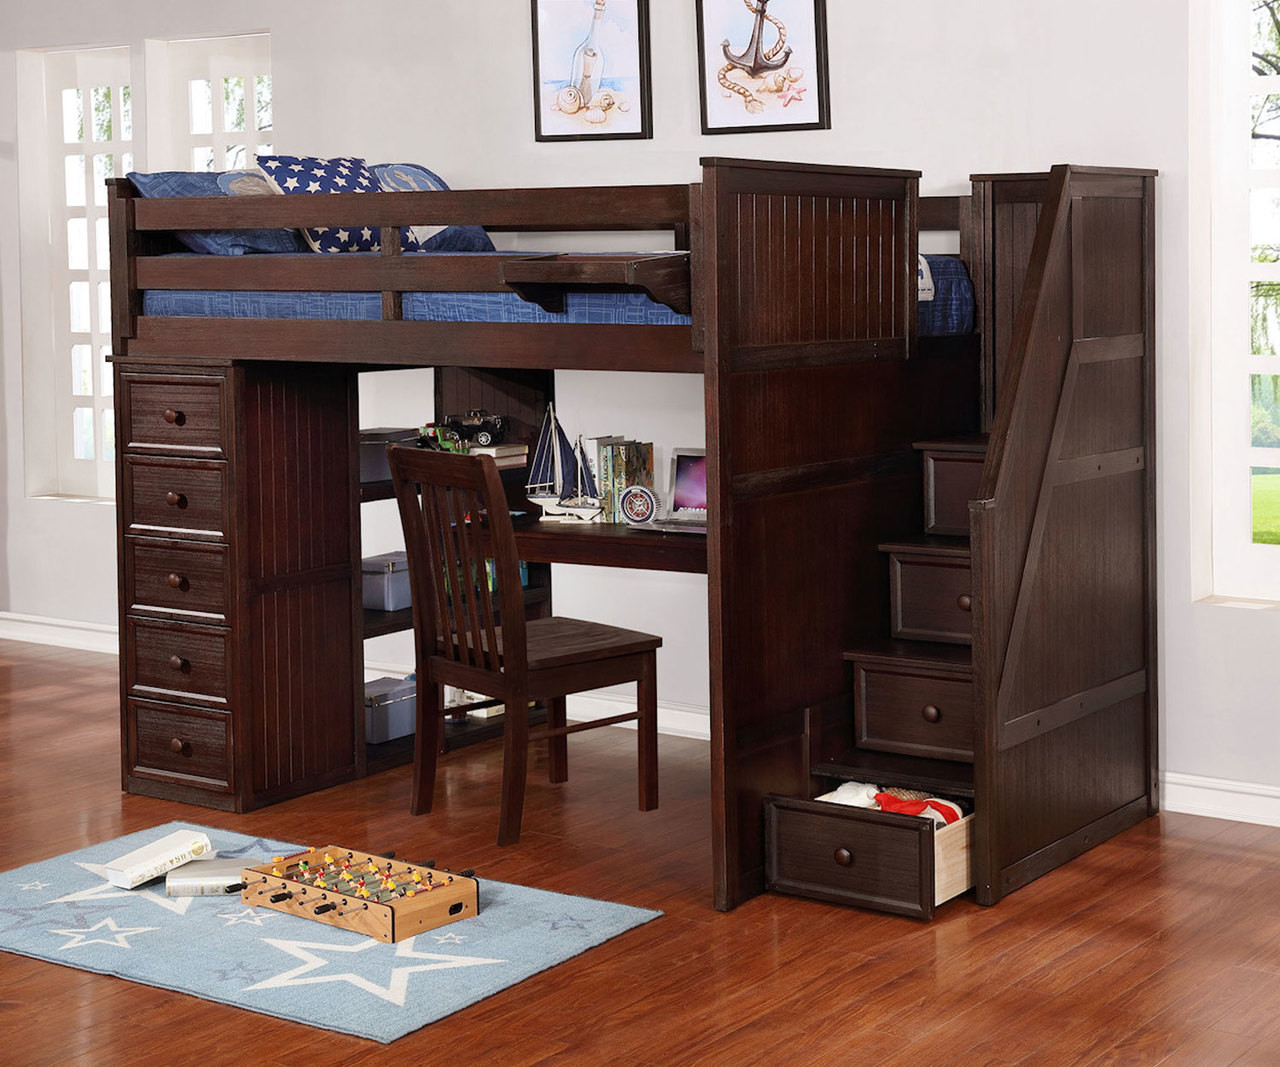 Multifunction Full Size Loft Bed With Desk In Weathered Espresso